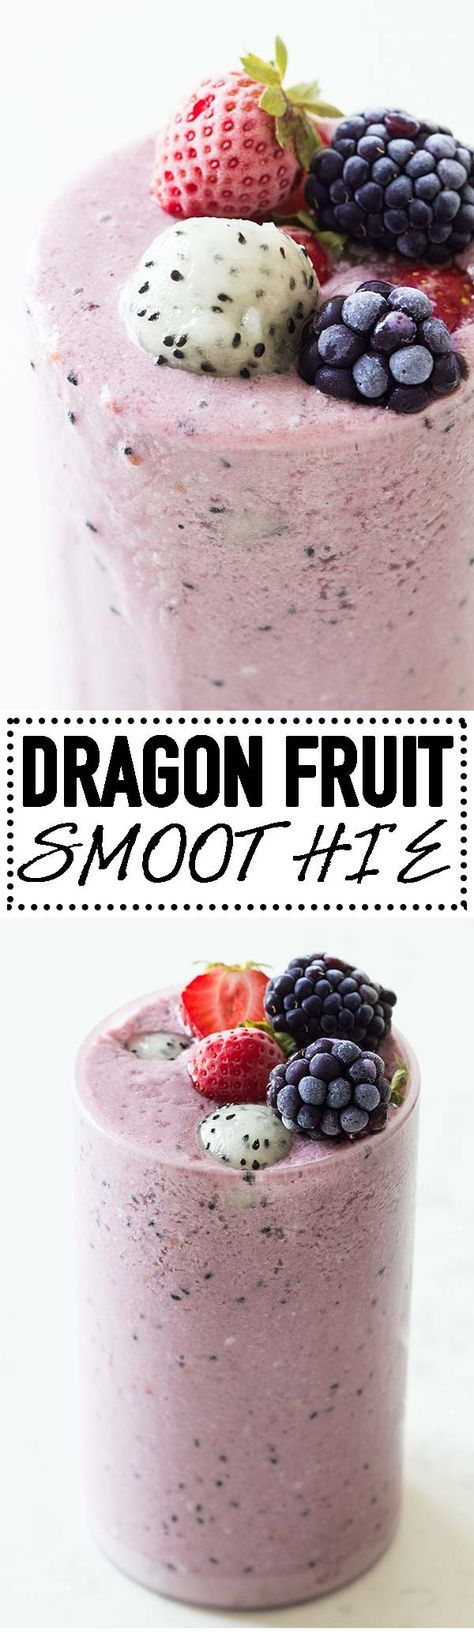 Dragon fruit is a low-calorie fruit, high in fiber and packed with vitamin C. A dragon fruit smoothie is a great way to add dragon fruit into your diet. via @greenhealthycoo